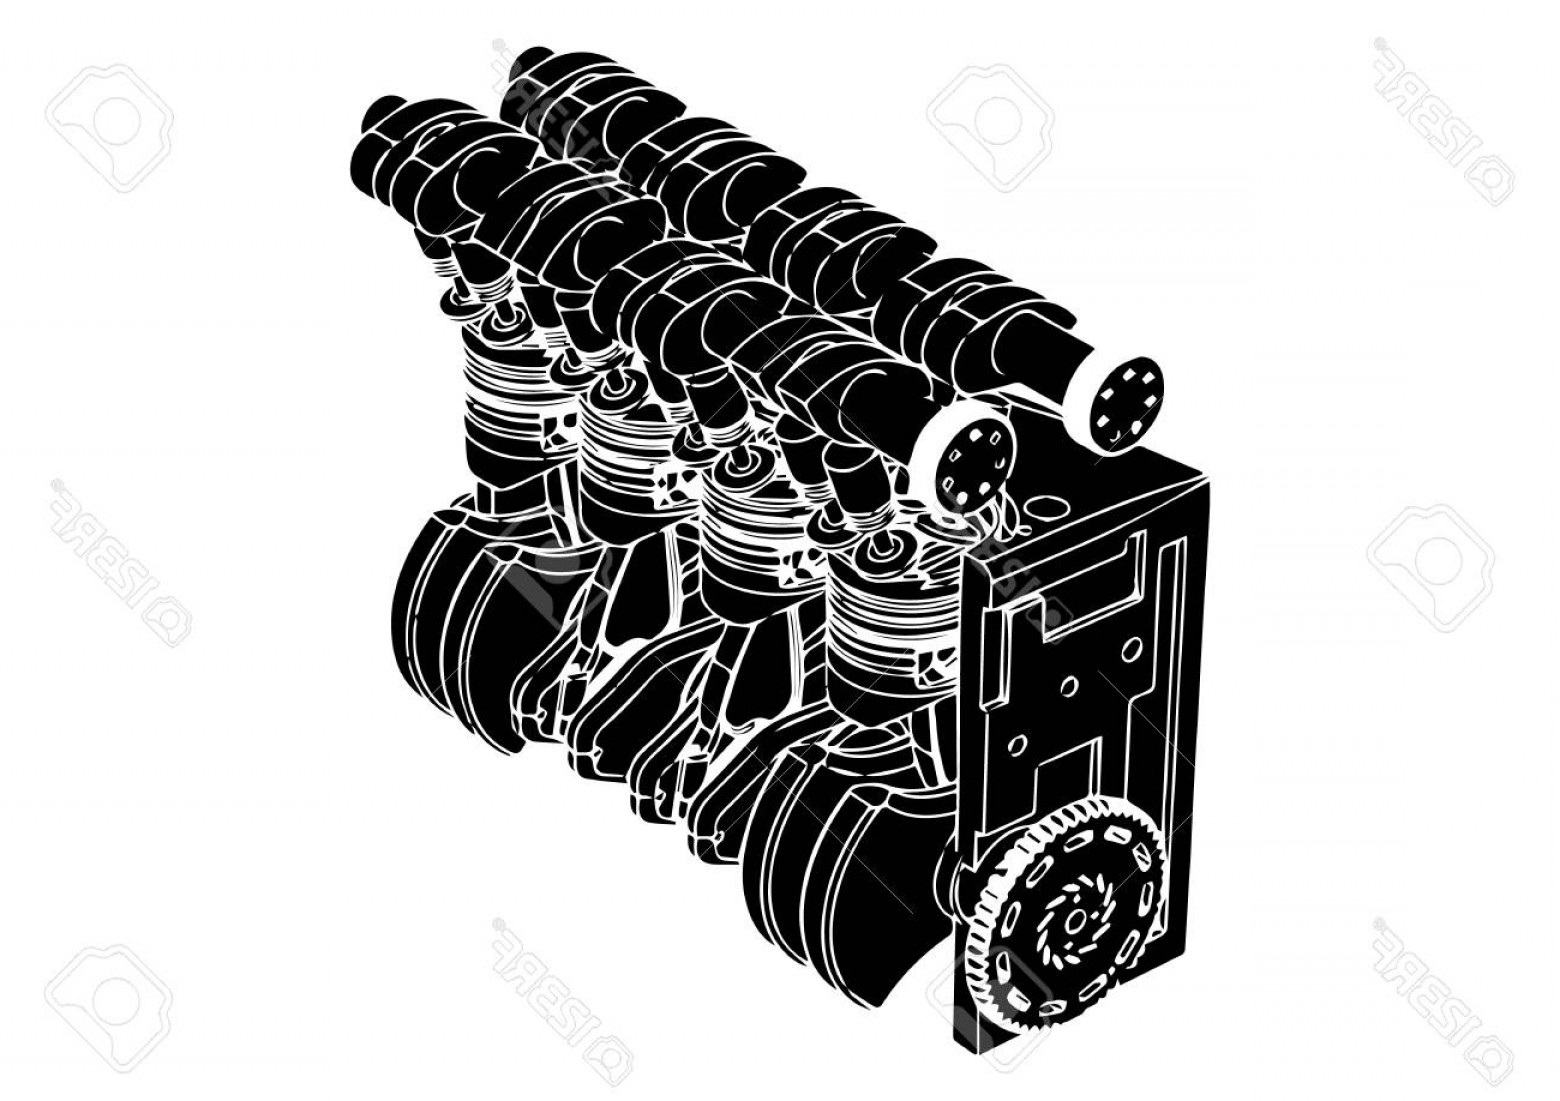 Combustible Engine Vector: Photostock Vector Black Internal Combustion Engine On A White Background